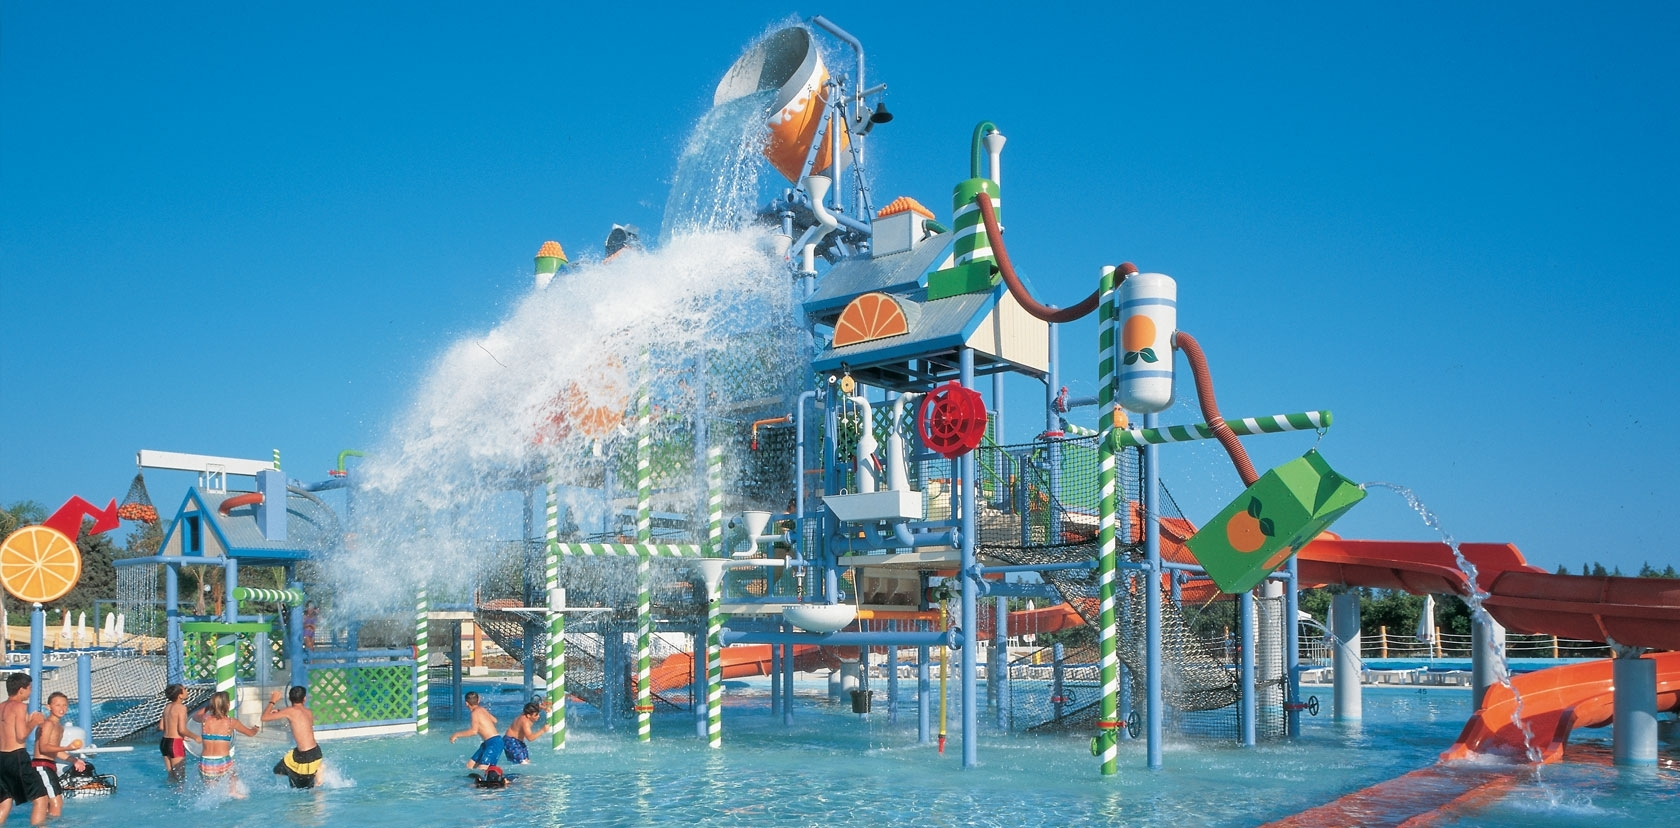 Fassouri Watermania Waterpark Limassol